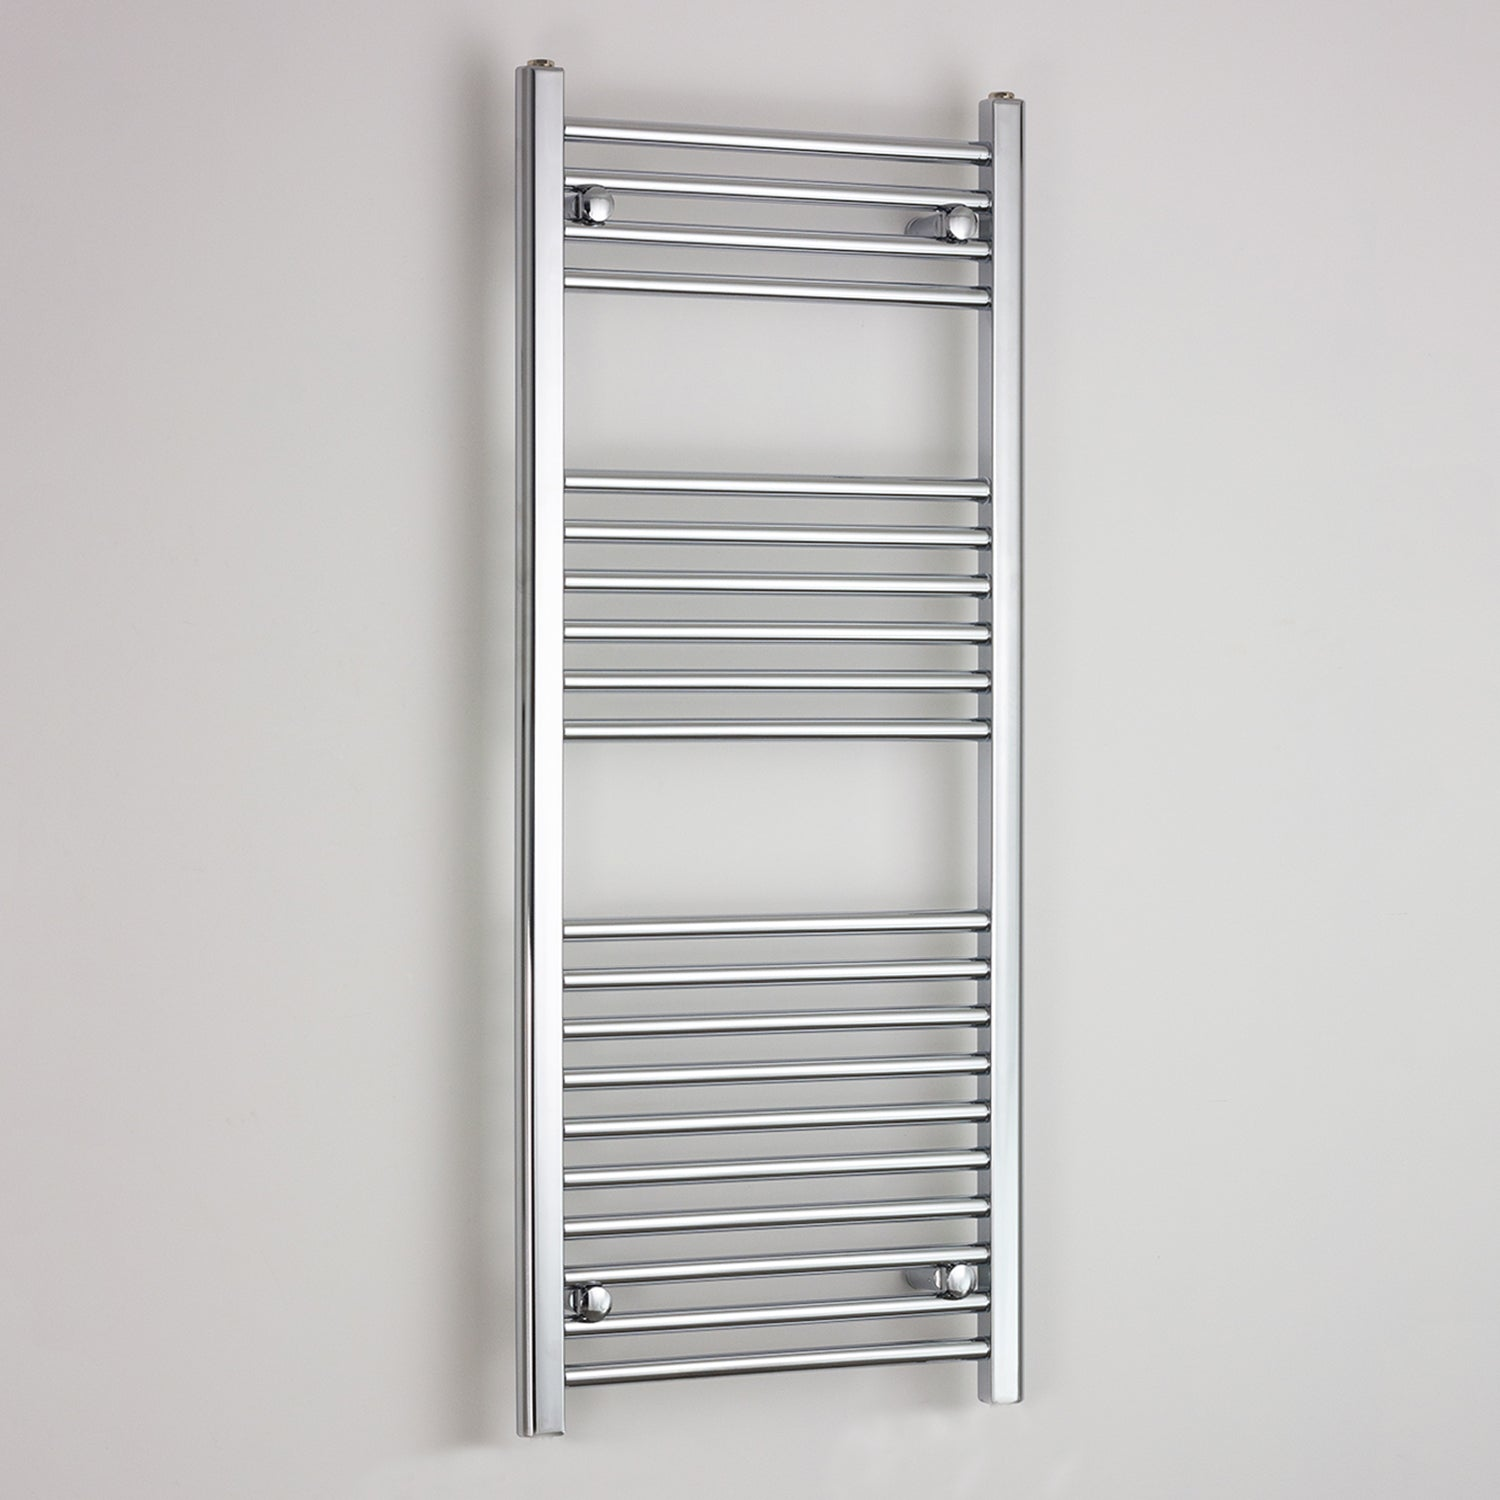 400mm Wide 1200mm High Curved Chrome Heated Towel Rail Radiator HTR,Towel Rail Only